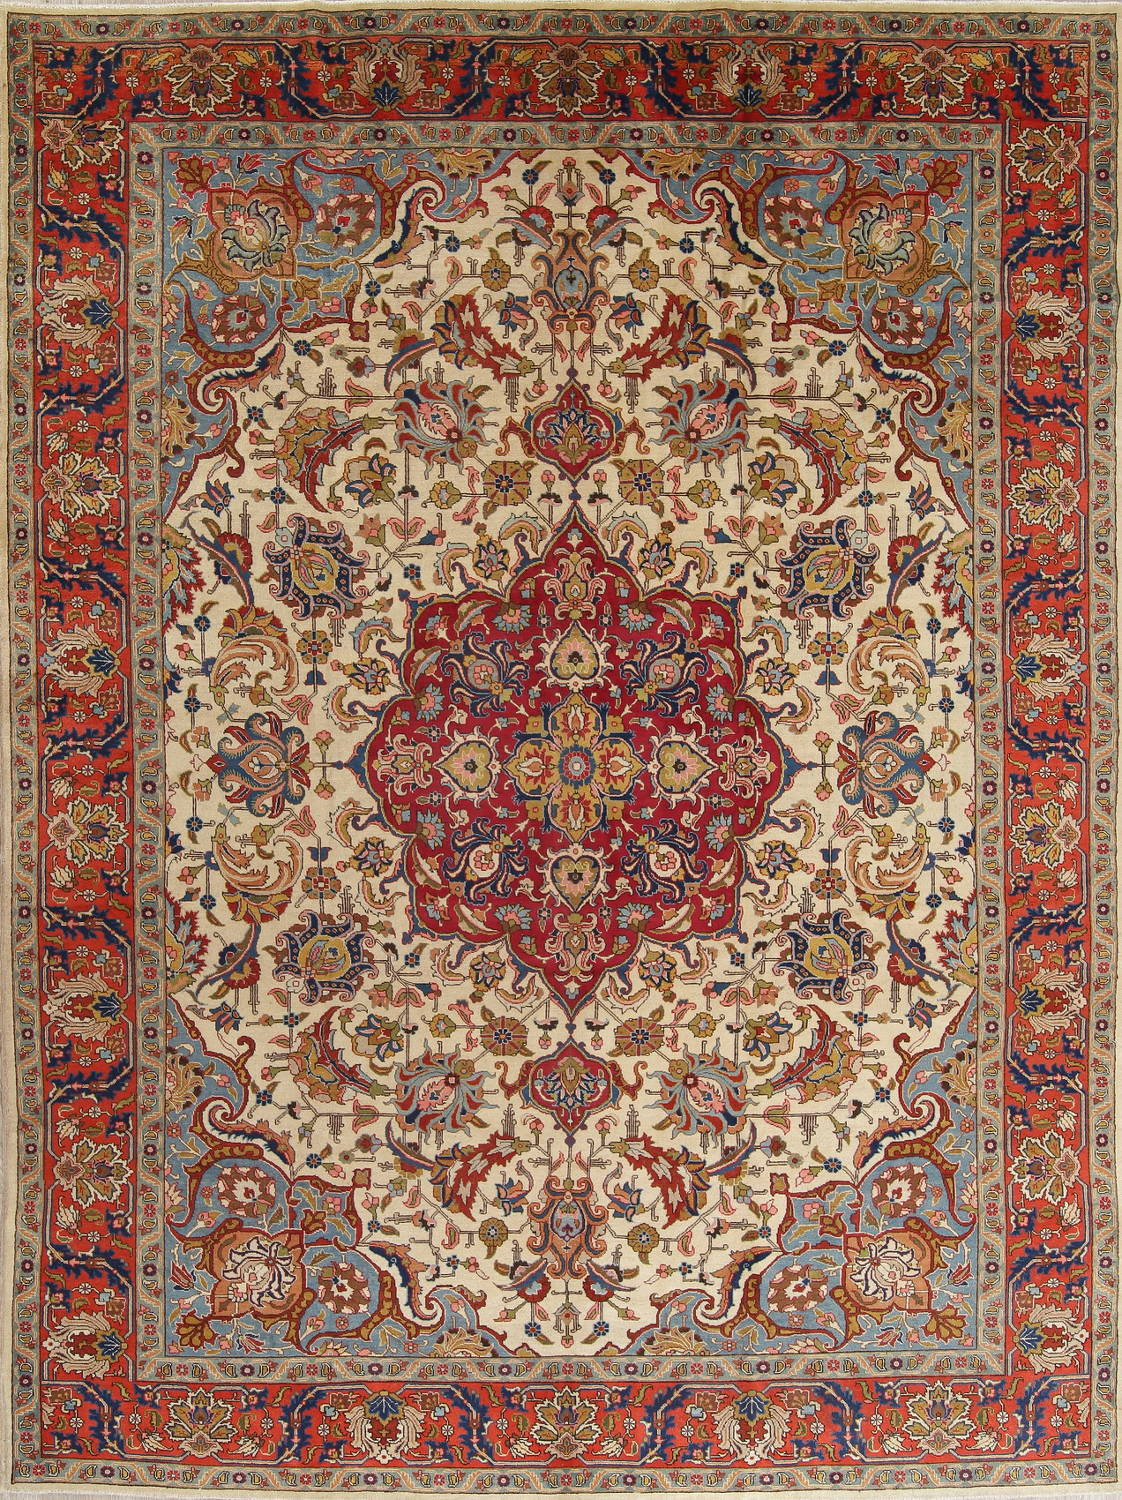 Antique Vegetable Dye Tabriz Persian Hand-Knotted Area Rug Wool 10x13 image 1